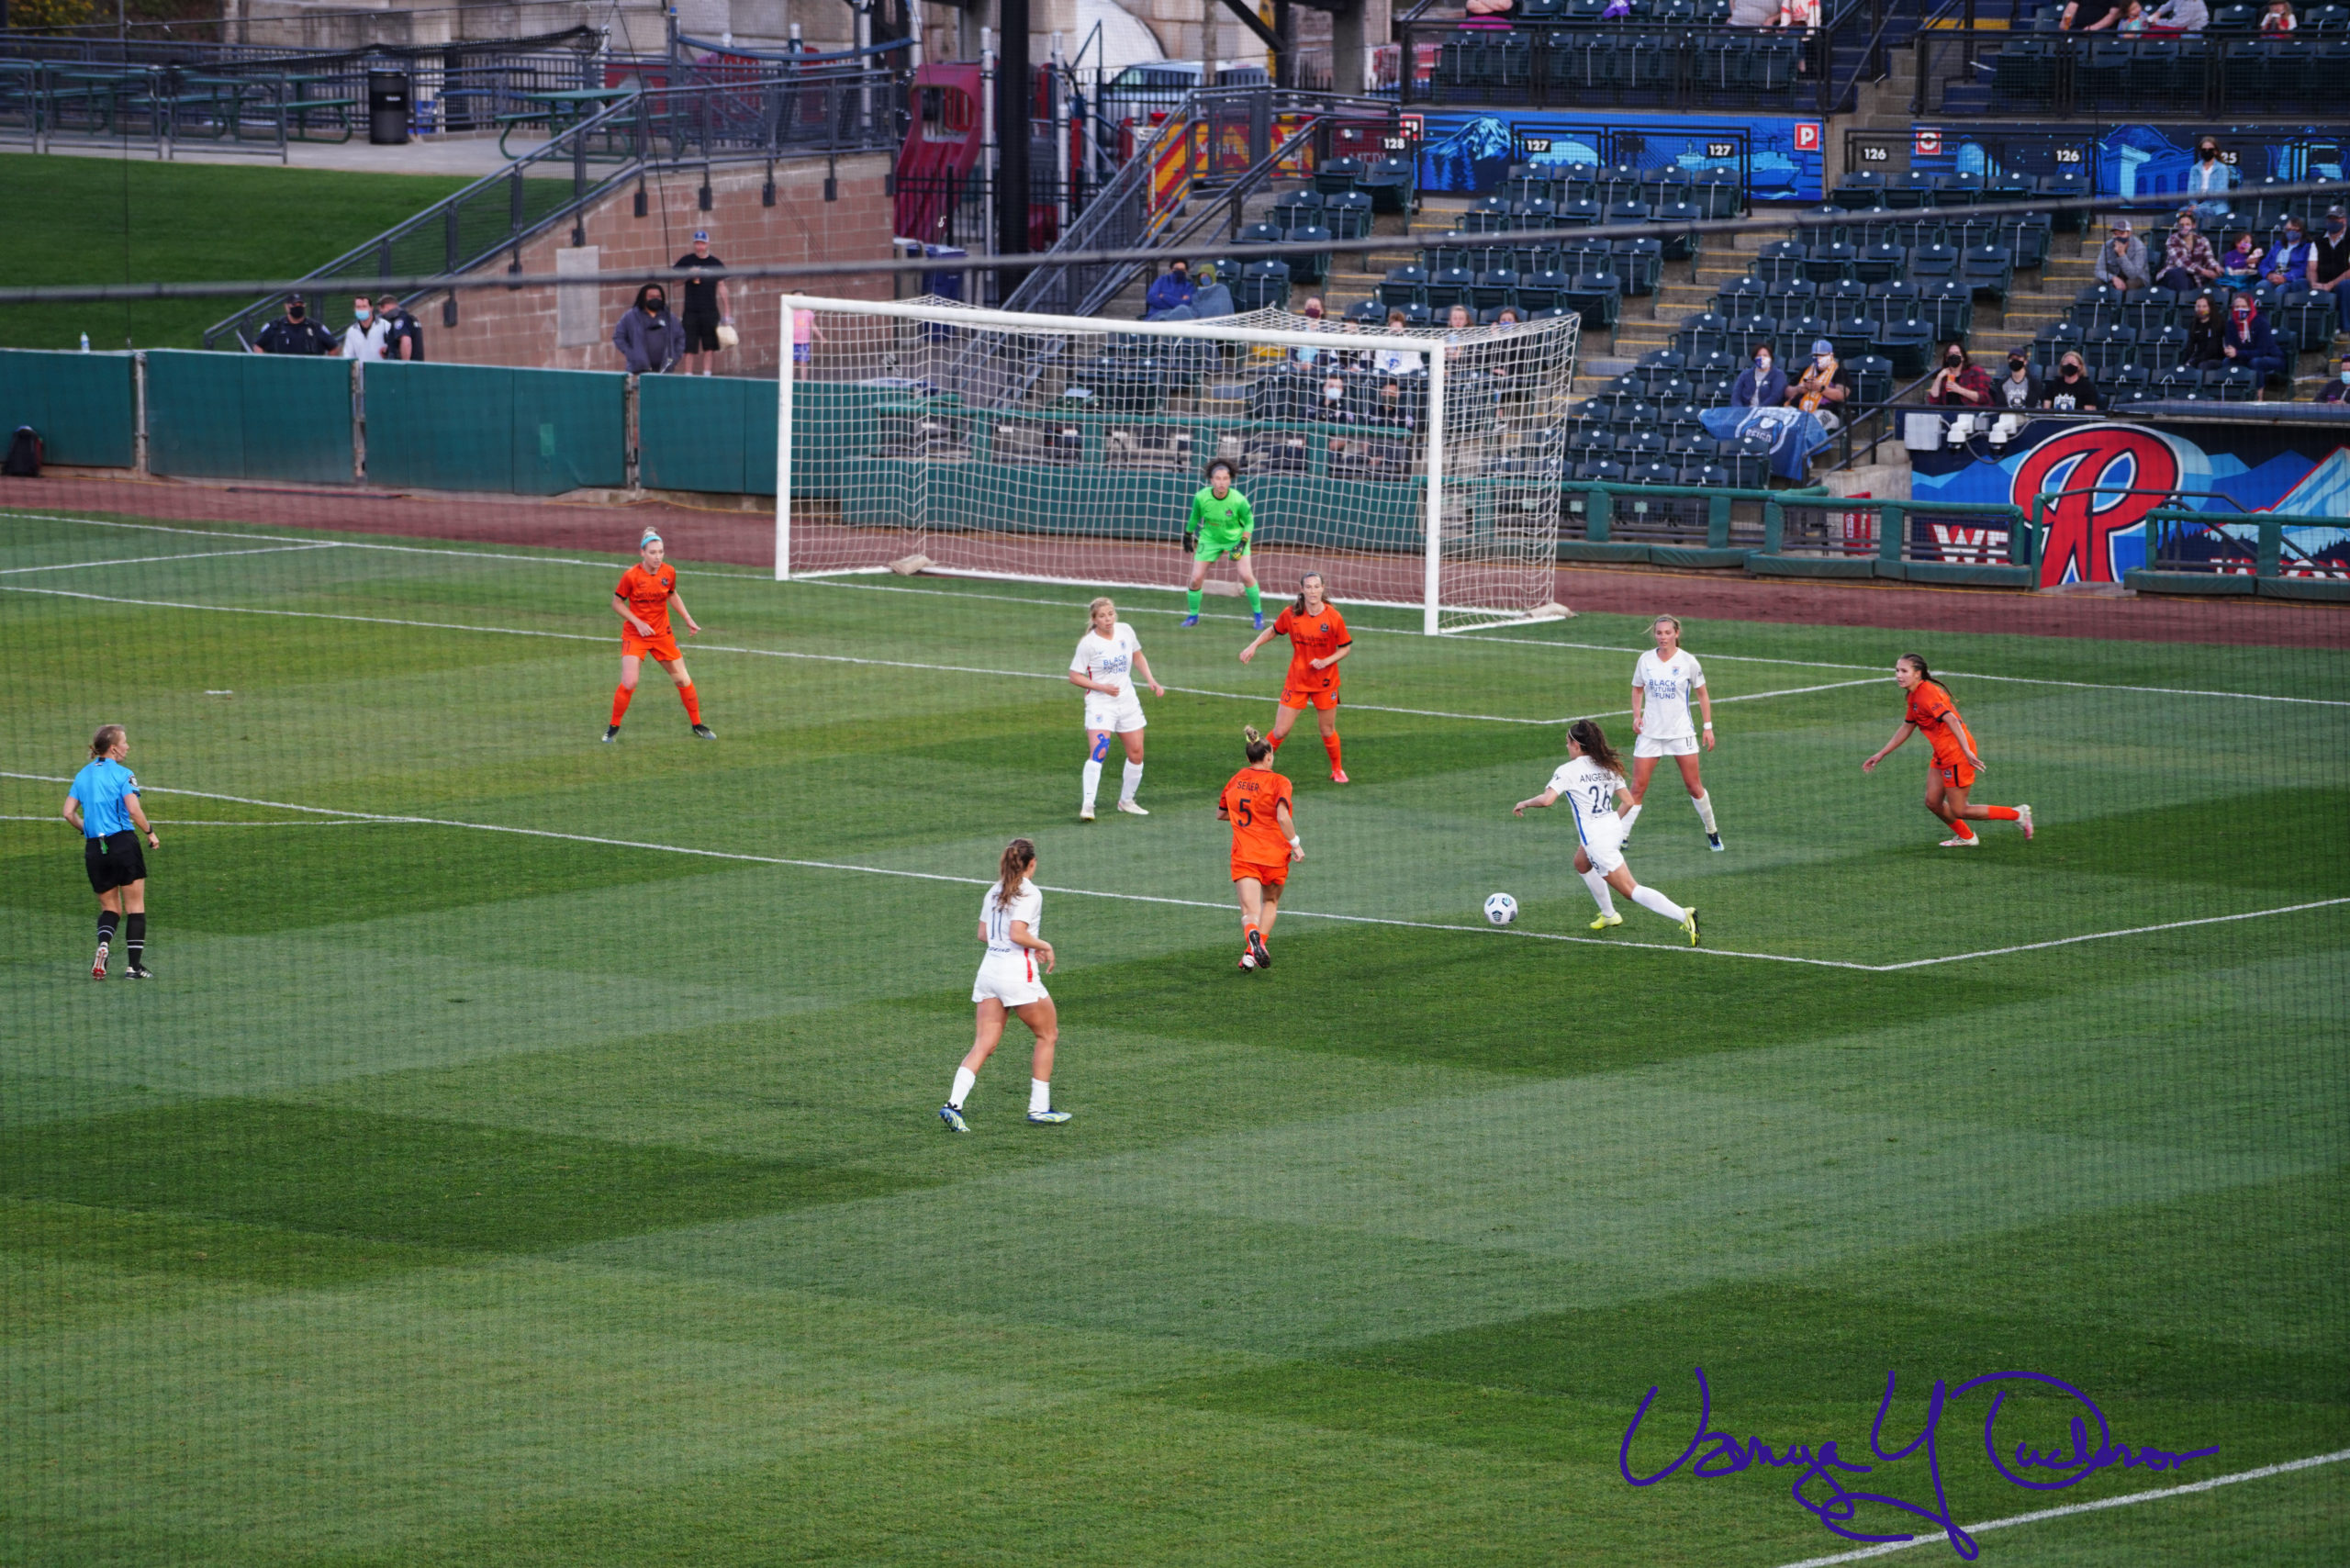 Angelina takes a shot from the edge of the box